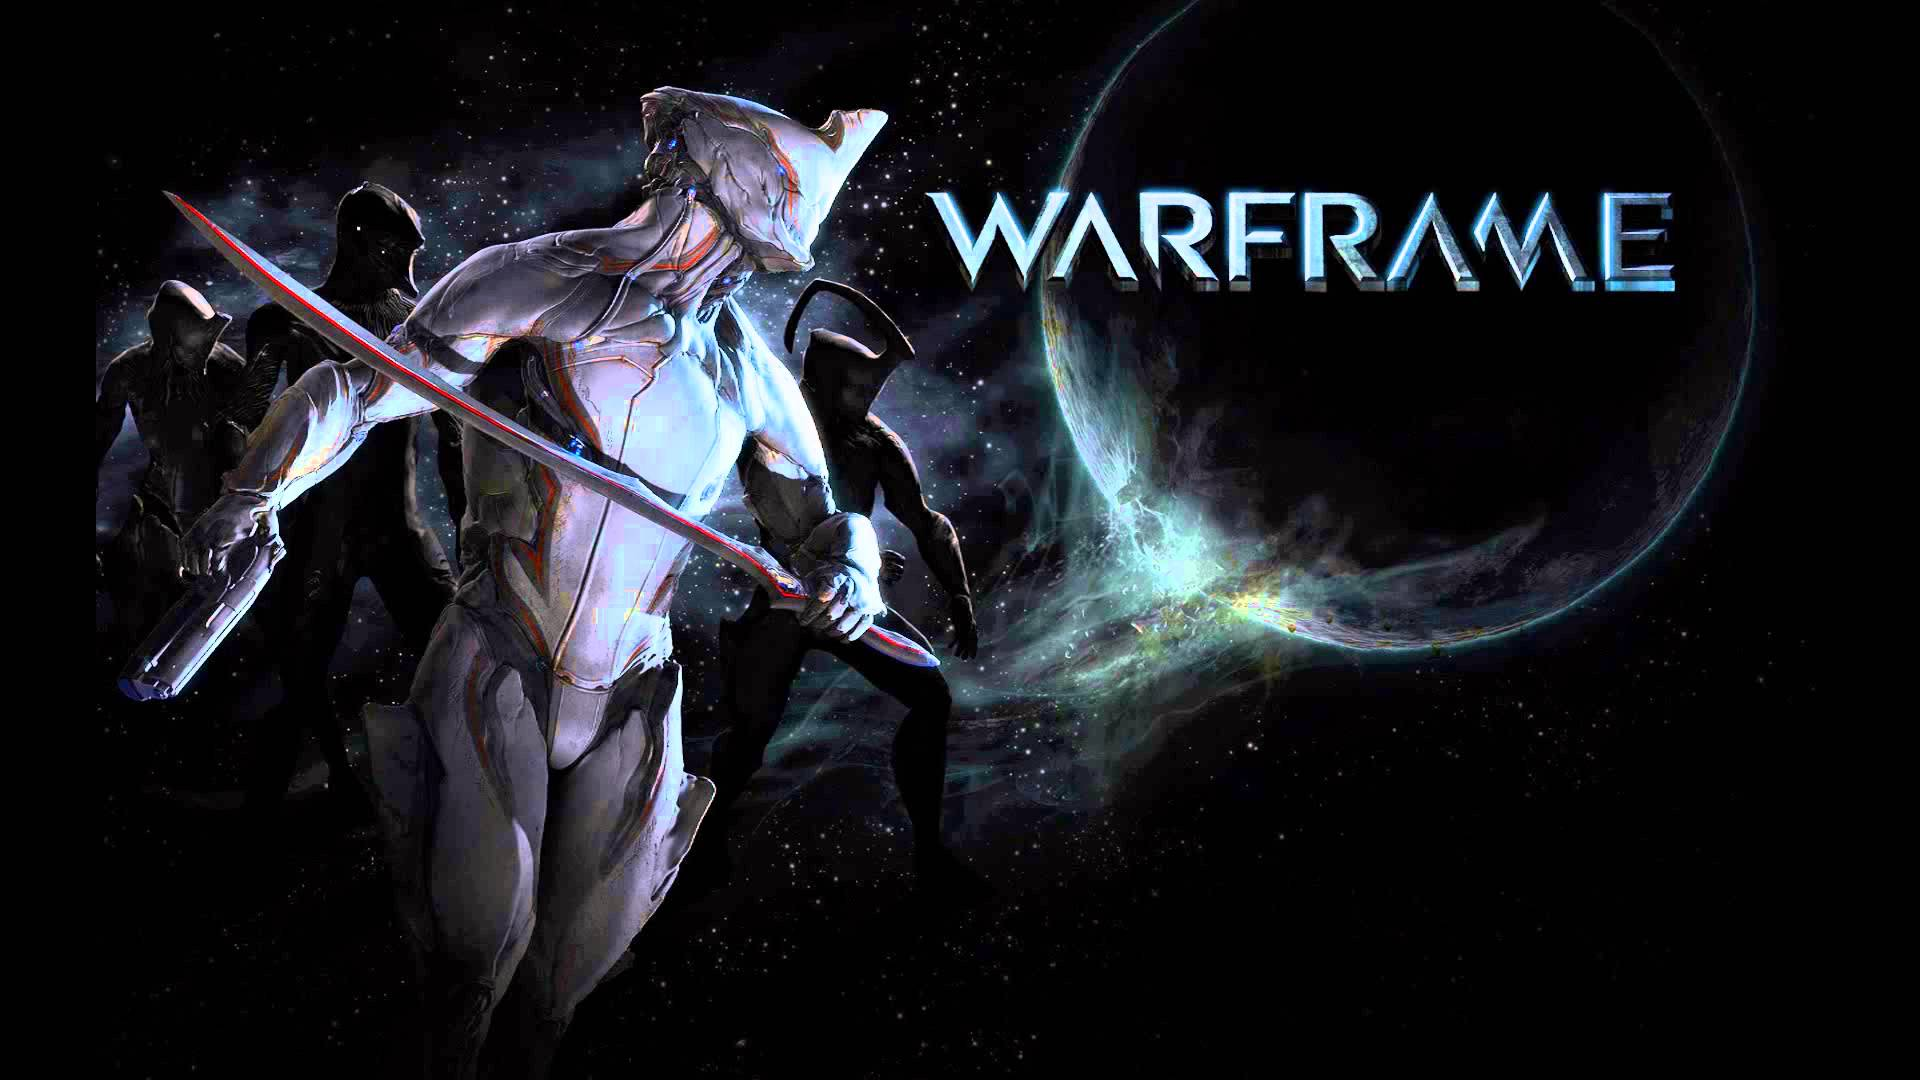 New PS4 Update for Warframe brings new game modes, weapons and more